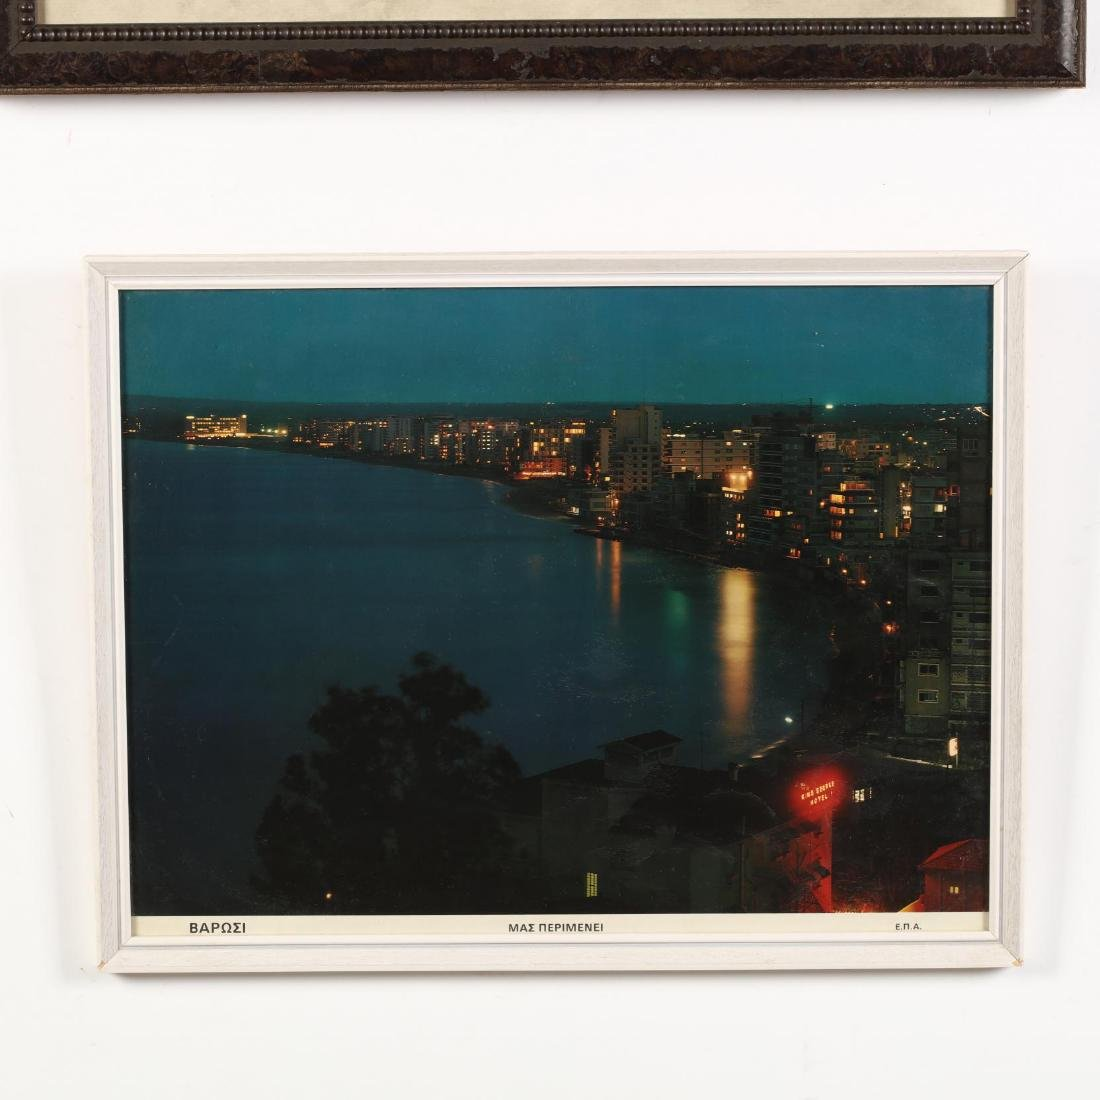 Two Framed Vintage Photographs of Cypriot Harbors - 3